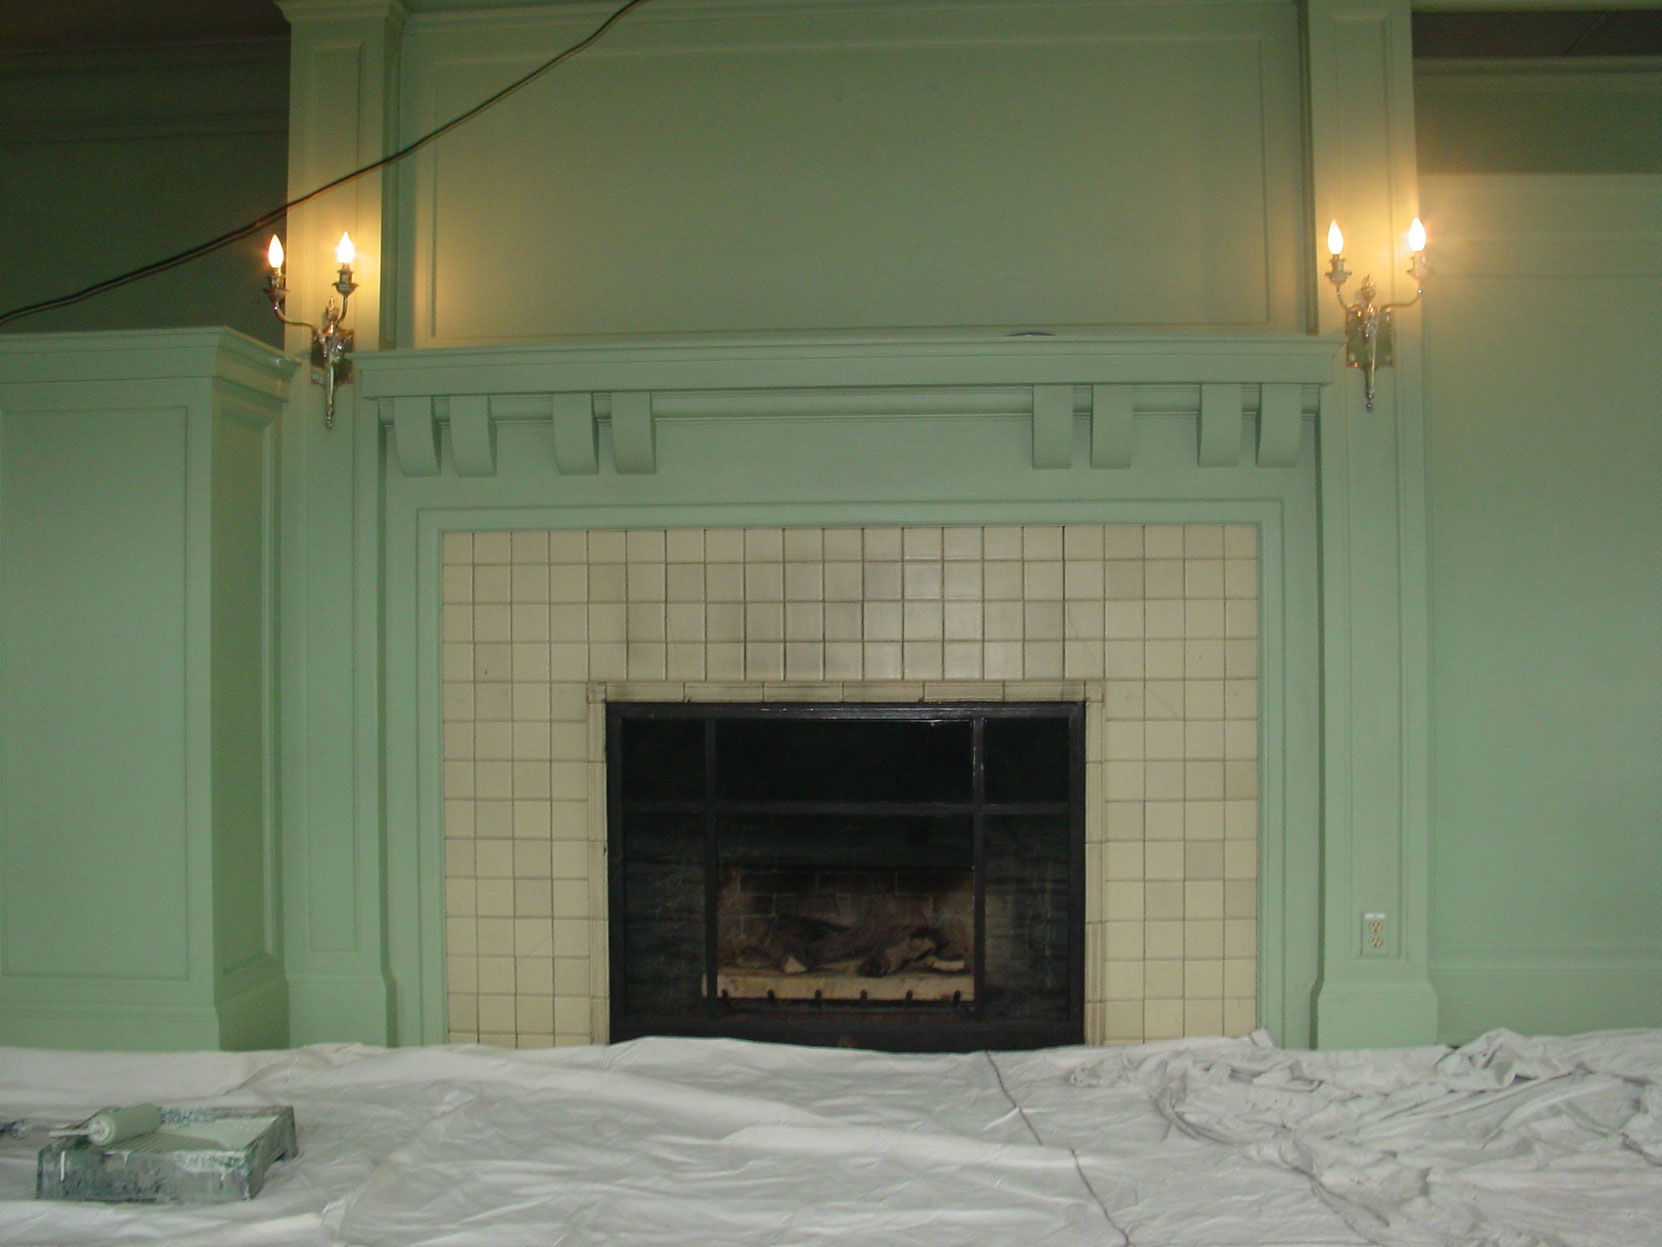 Samuel Maclure fireplace during Sun Room renovation in November 2003 (photo by Author)